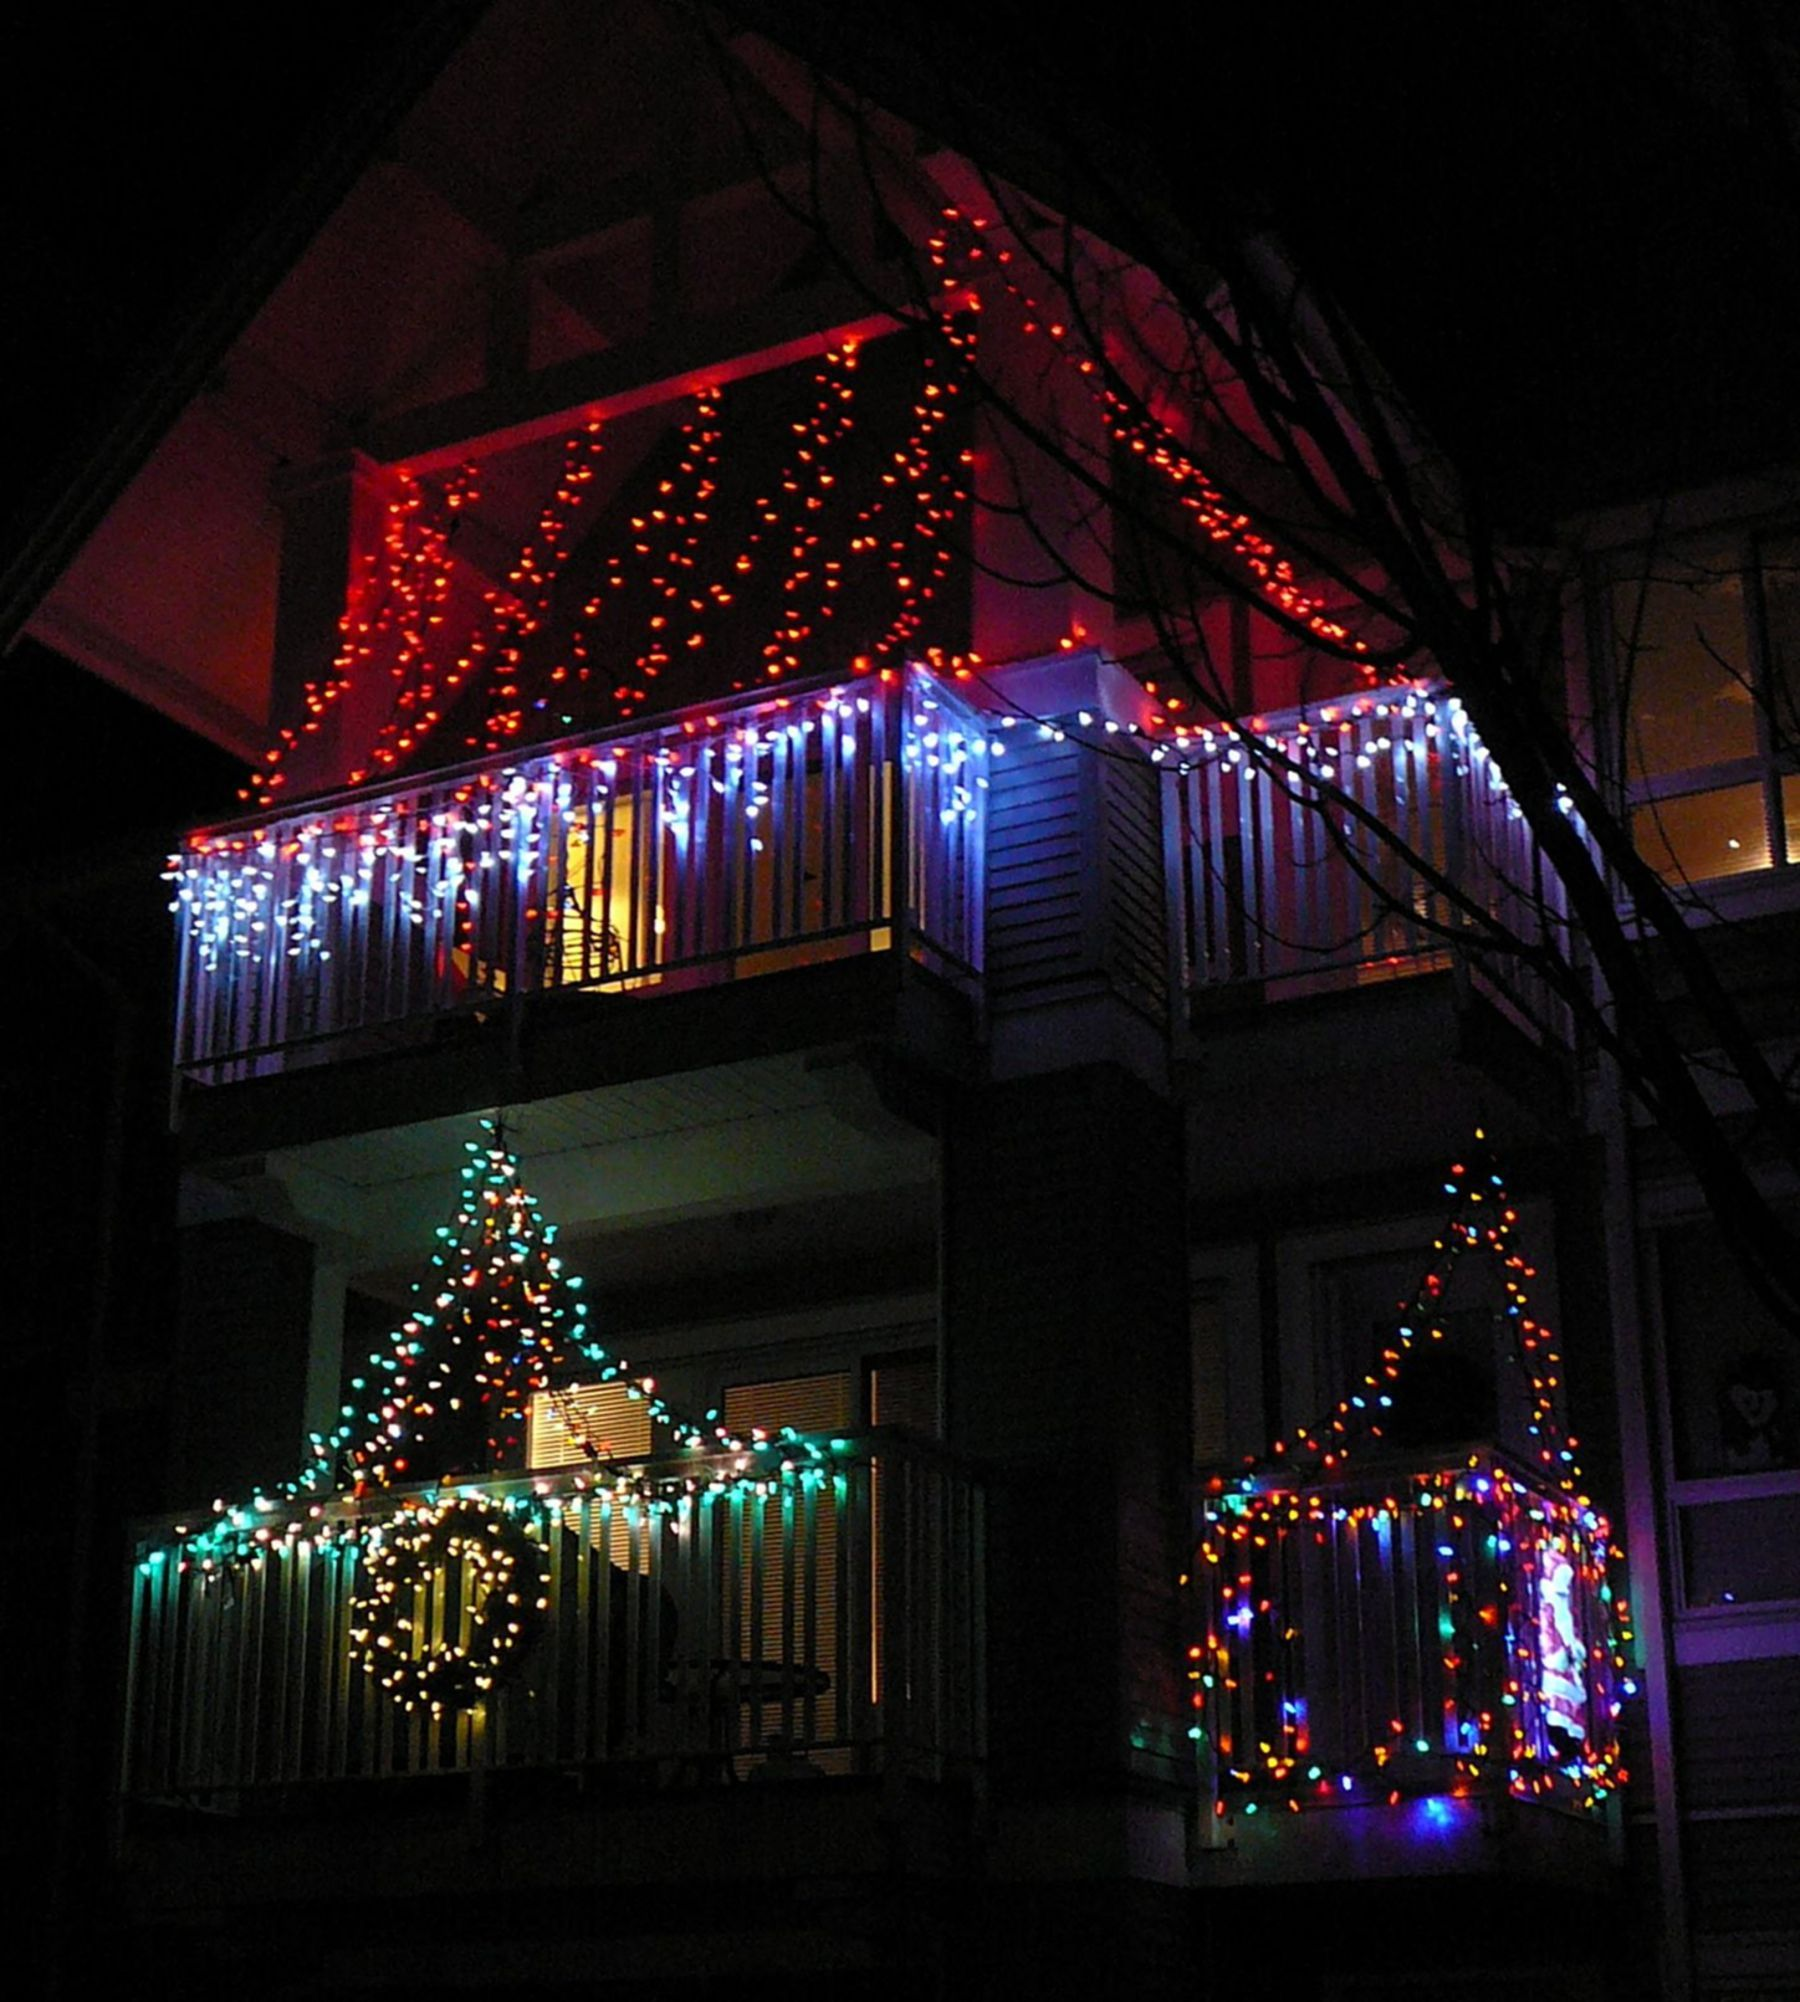 20 cool christmas lights decorating ideas for balcony decorating with christmas lights on christmas balcony decorations apartment patio id=48933